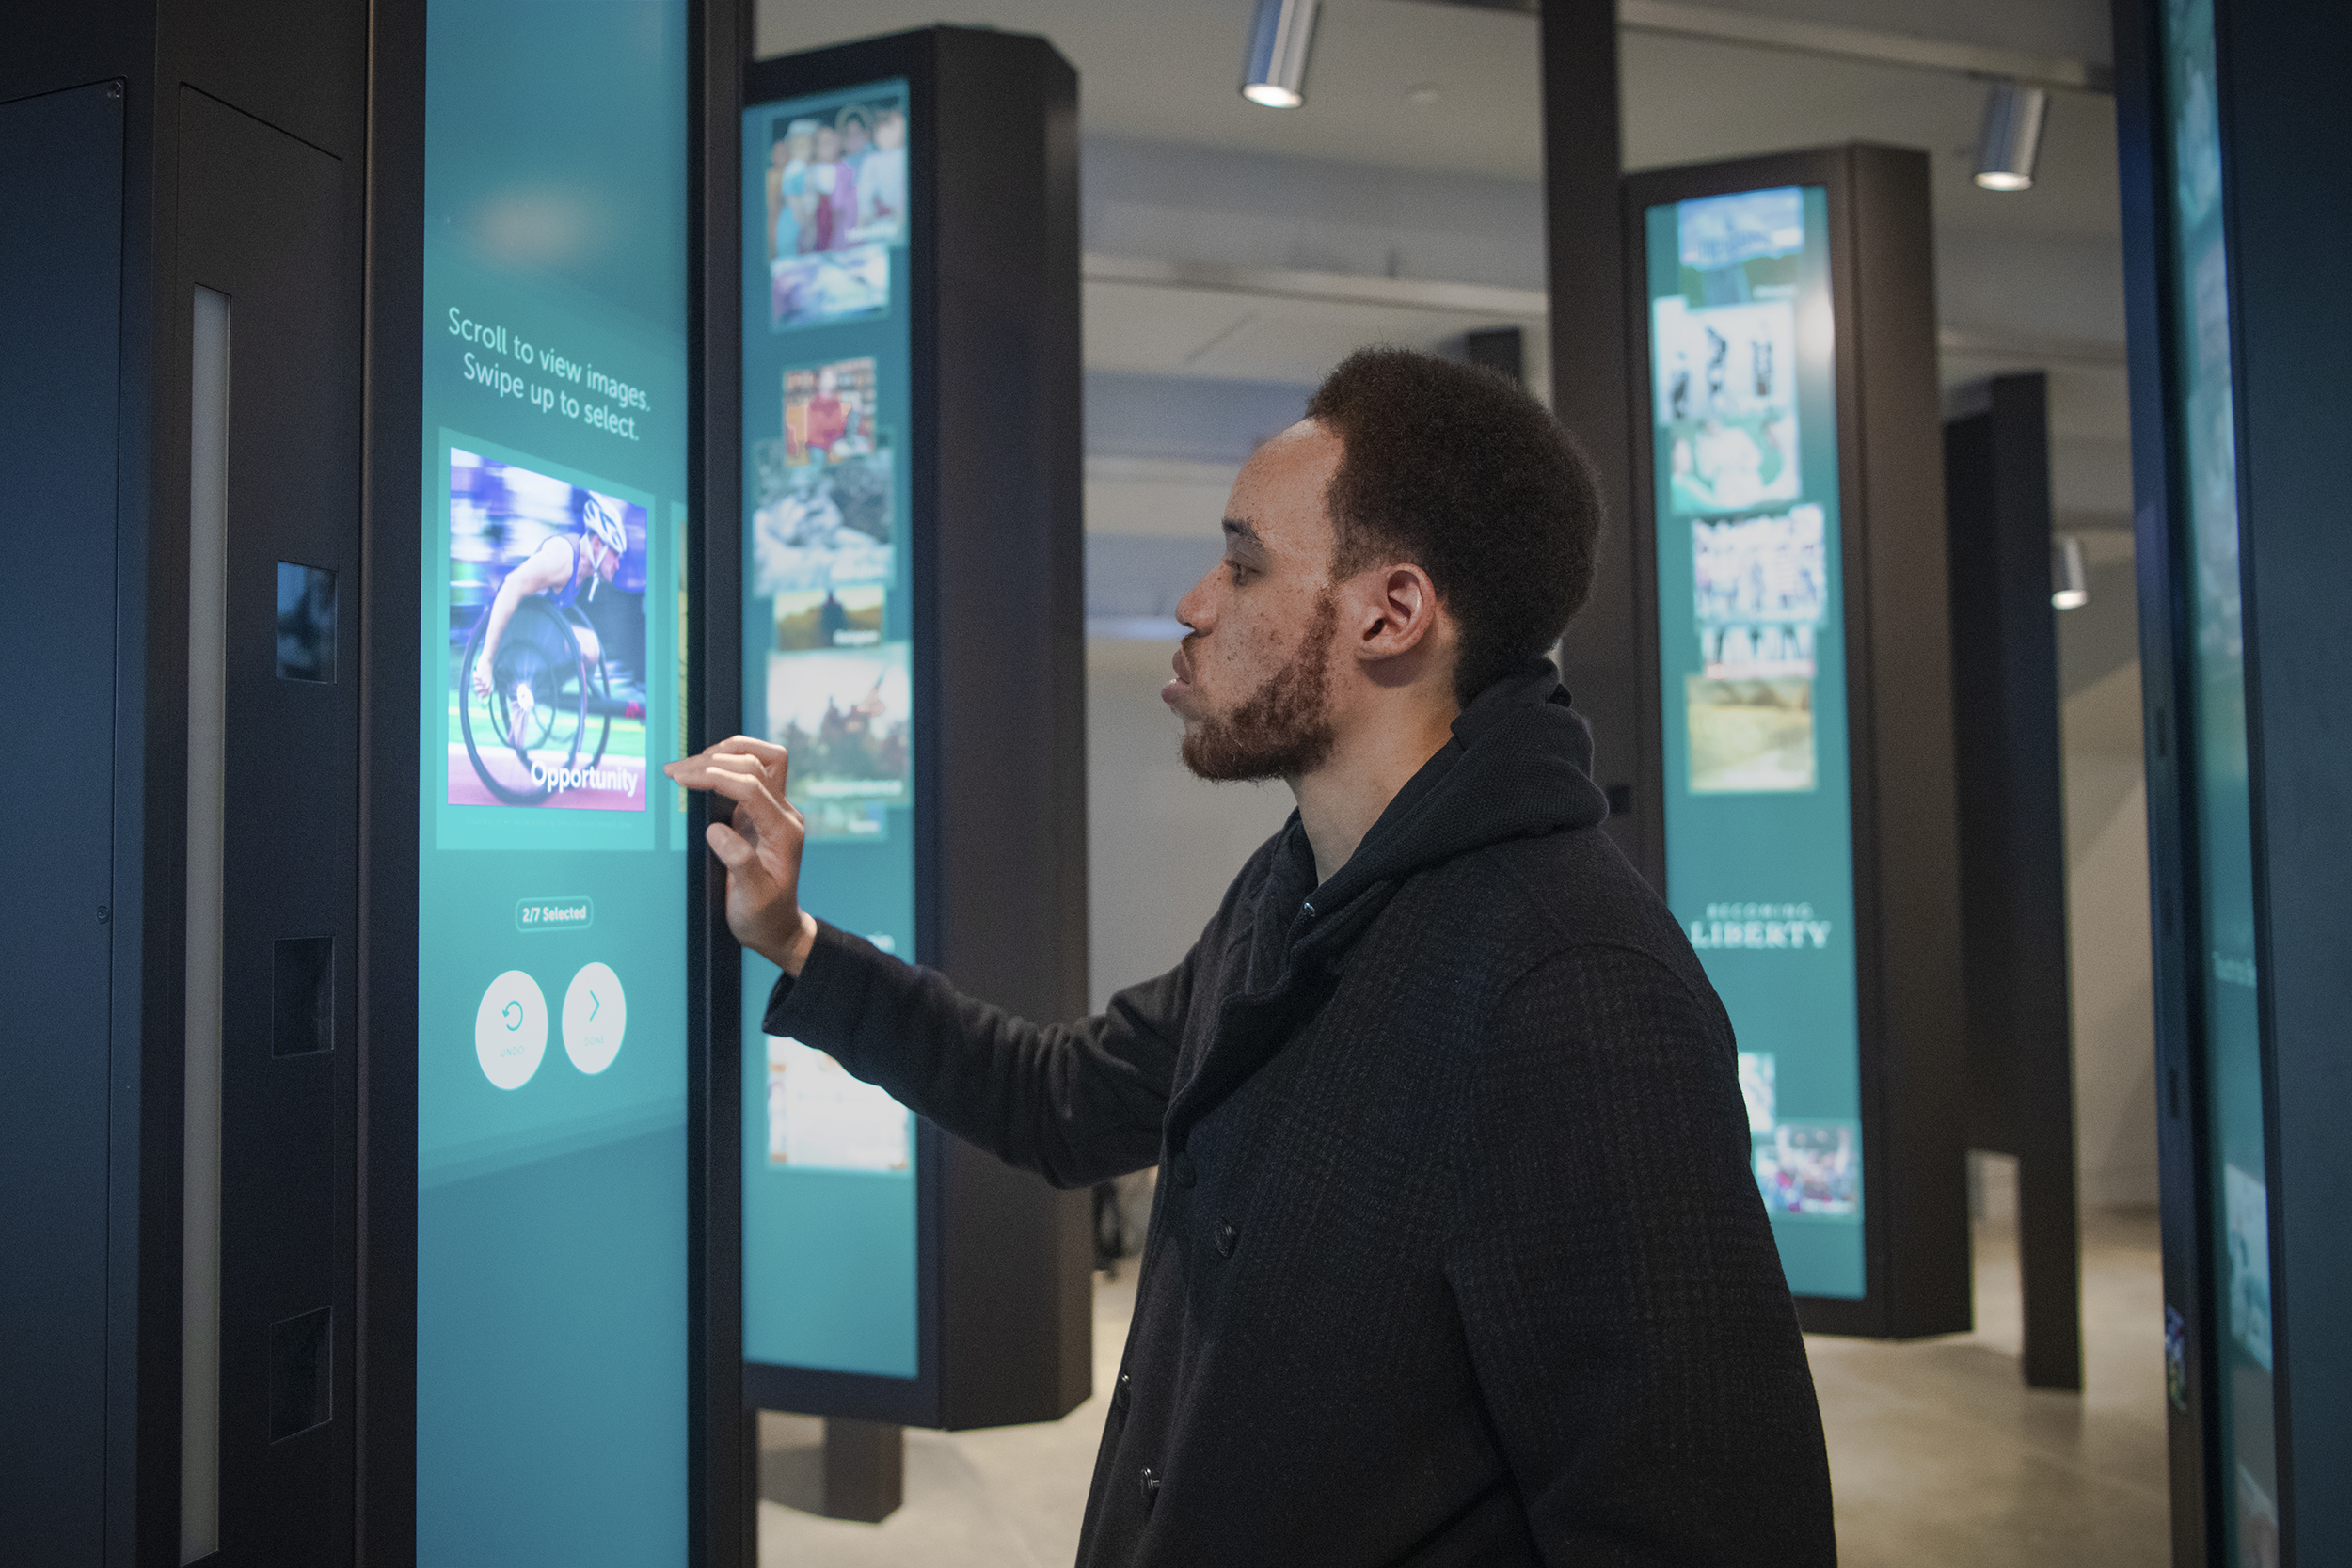 """At New York's Statue of Liberty Museum, a visitor participates in Becoming Liberty at one of 20 kiosks by choosing seven images that represent """"liberty"""" to them."""